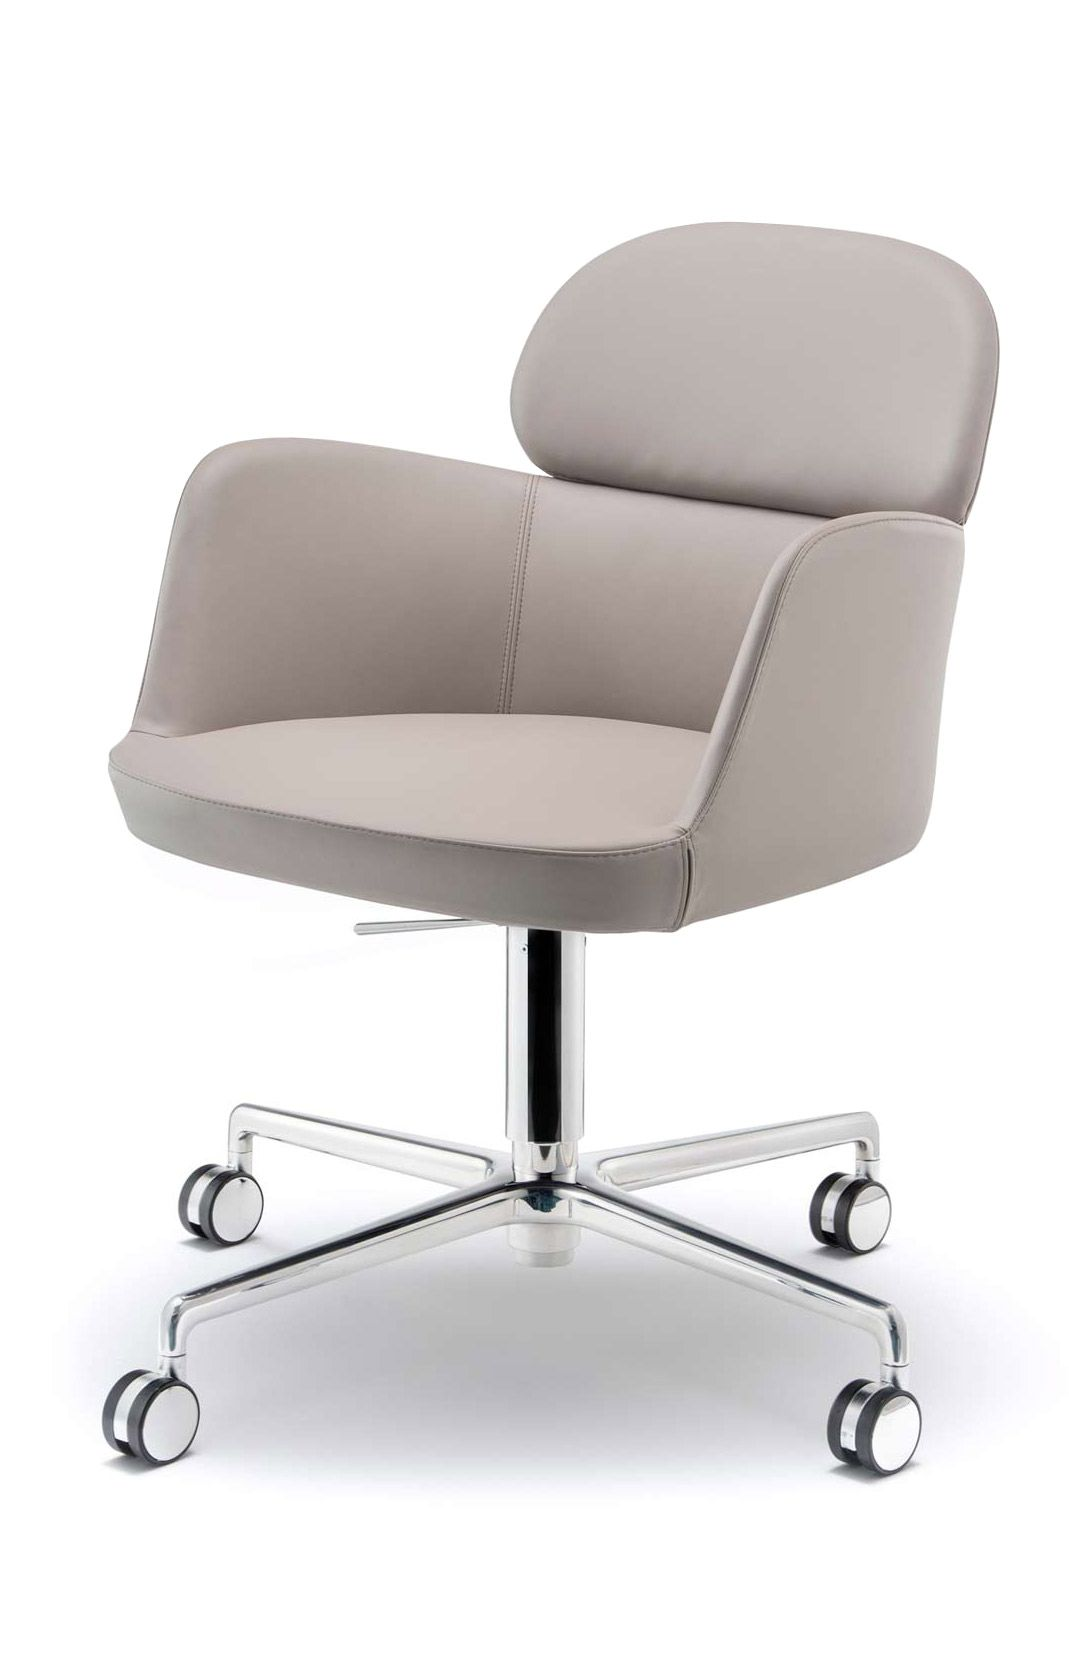 Ester Desk Chair Contemporary Office Chairs White Leather Office Chair Office Chair Cushion